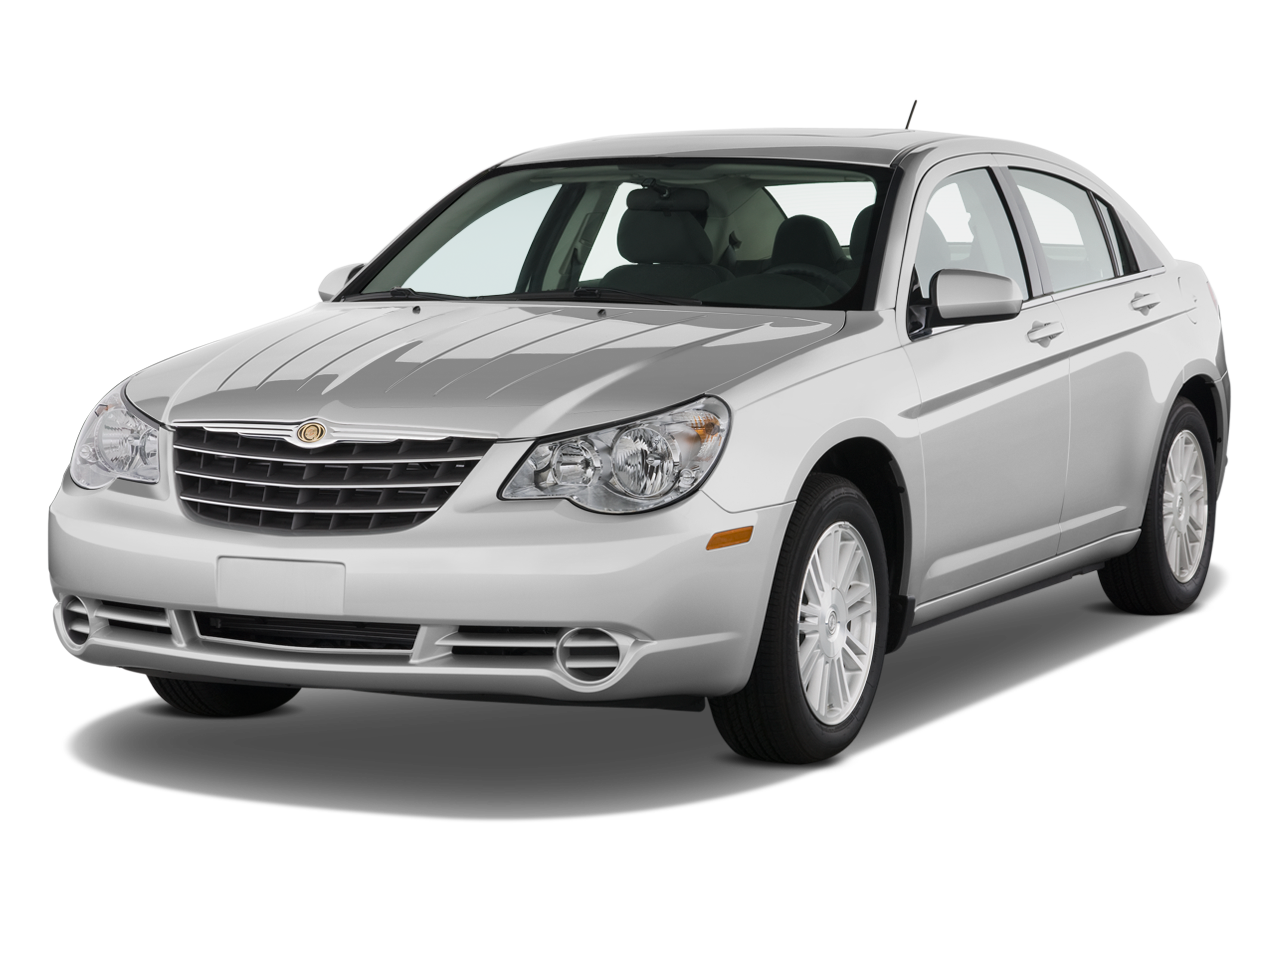 2008 chrysler sebring convertible latest news auto show coverage and futu. Cars Review. Best American Auto & Cars Review